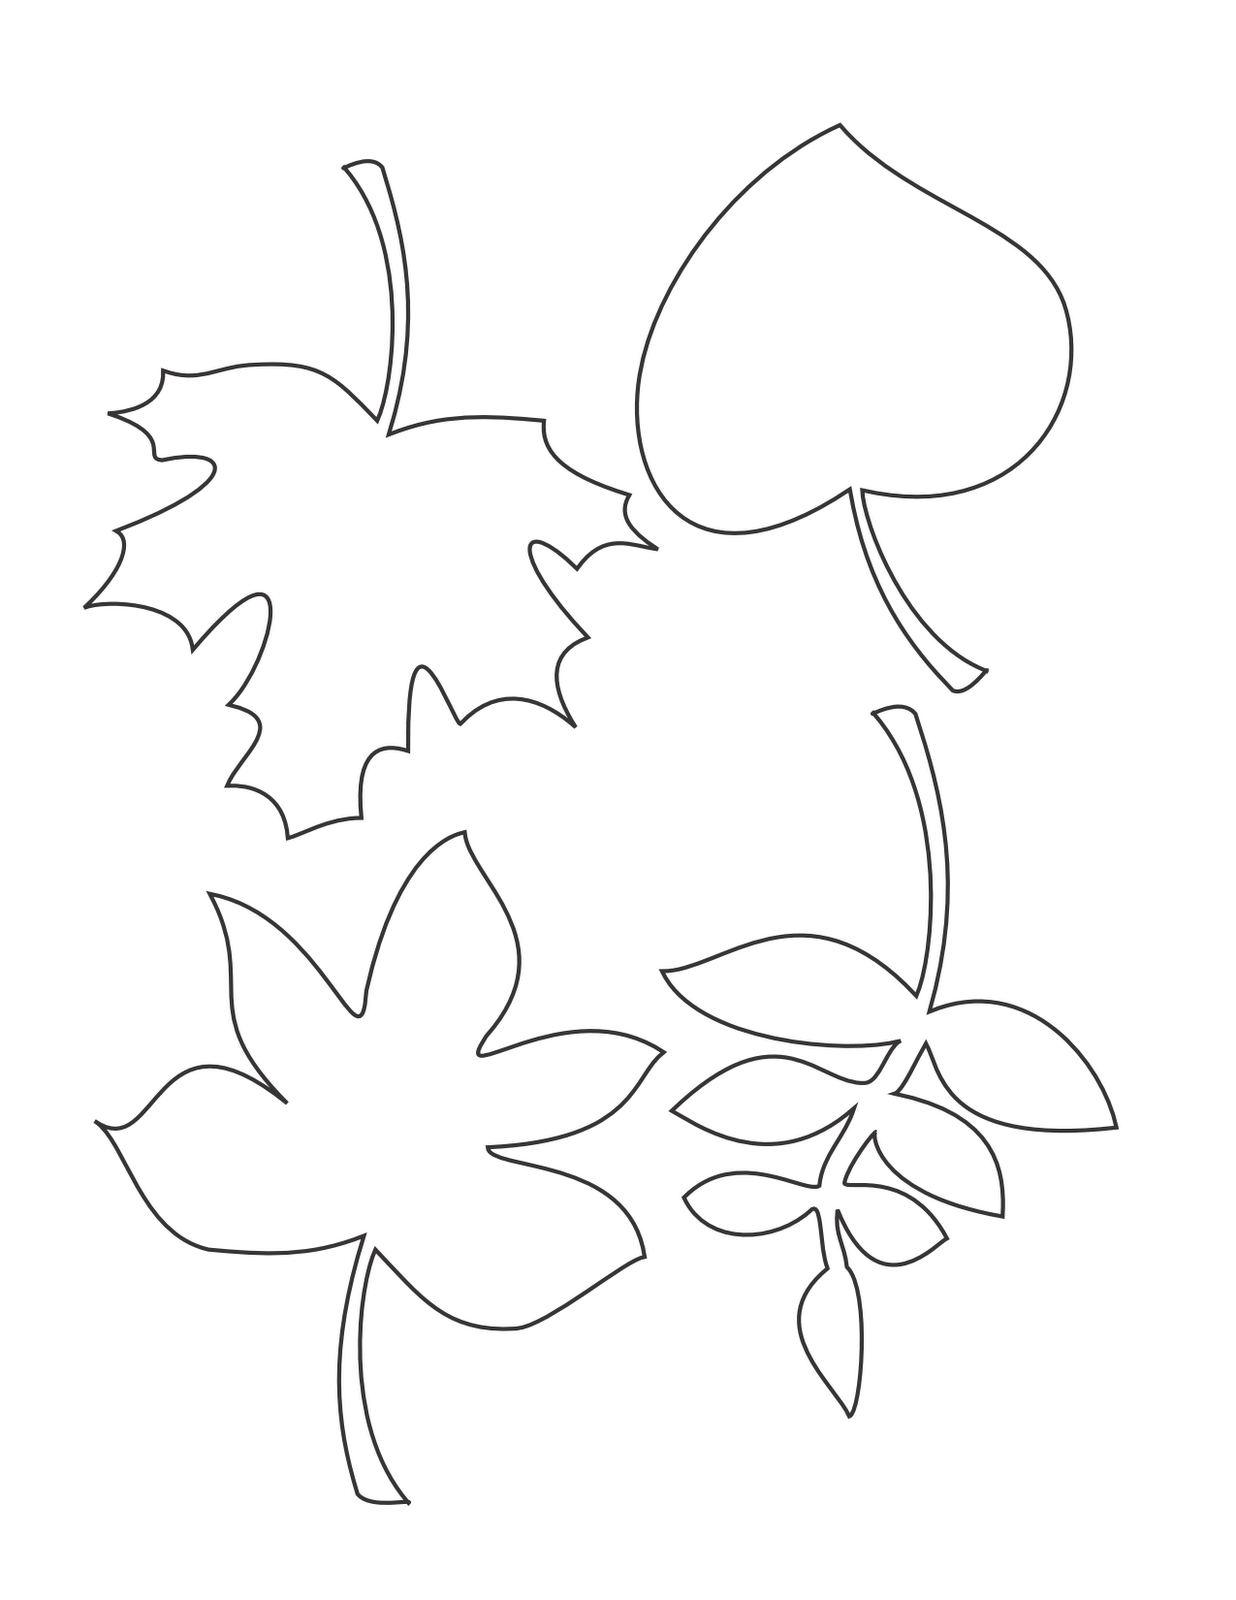 Coloring Pages DLTK's Crafts for Kids - autumn coloring pages printable